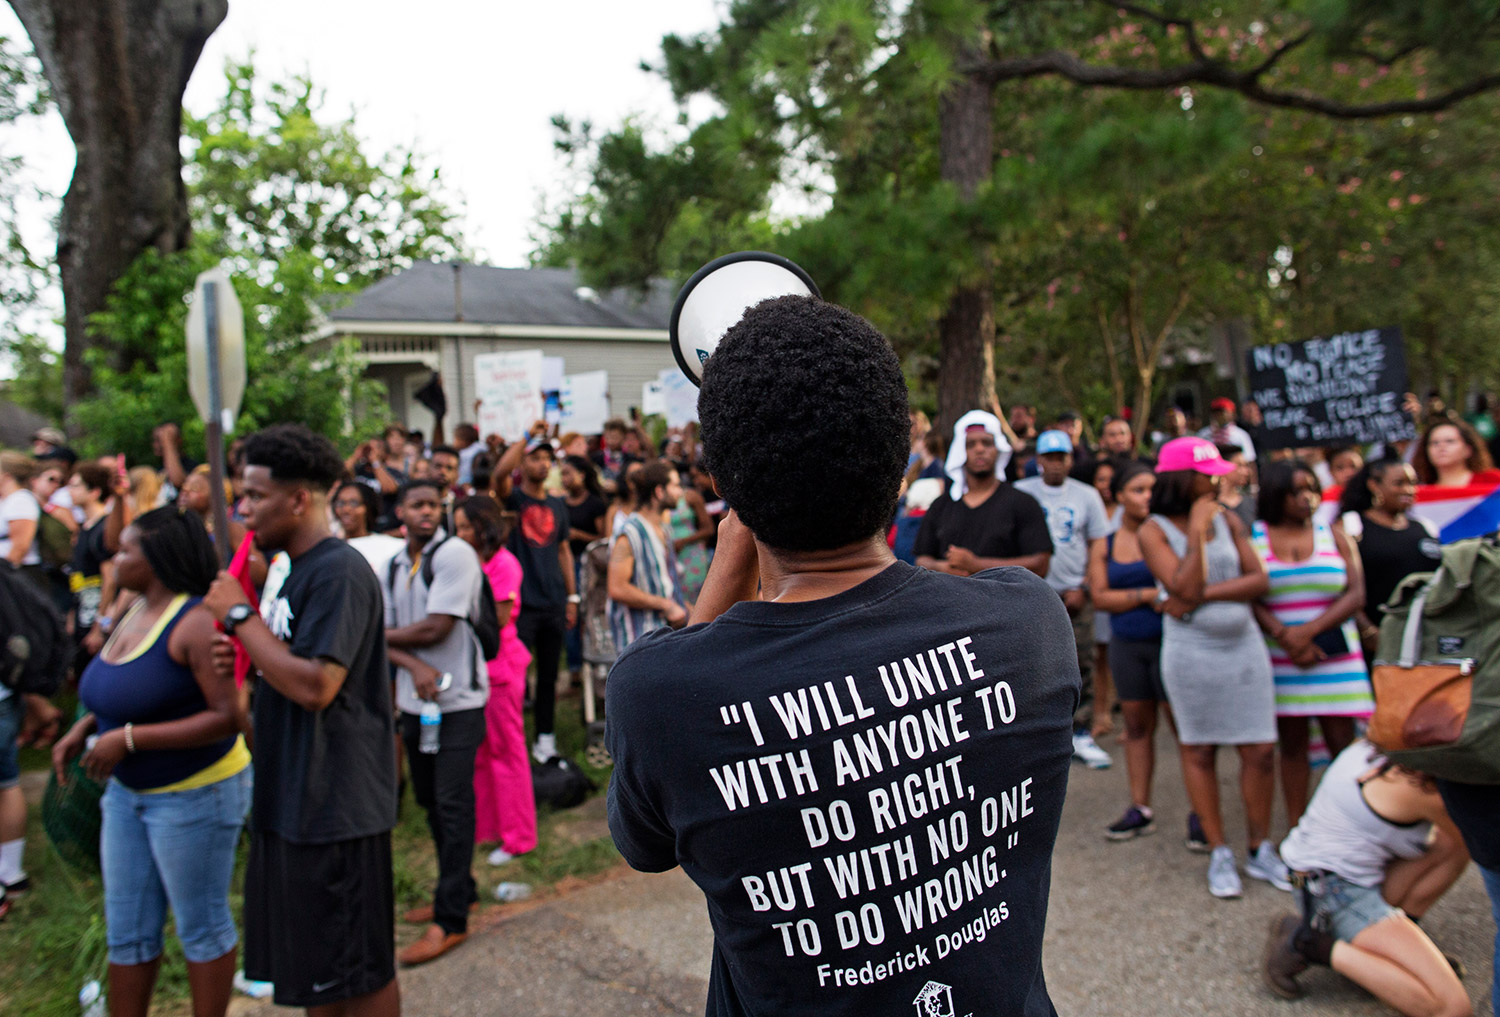 Protesters demonstrate in a residential neighborhood in Baton Rouge, La. on Sunday. After an organized protest in downtown Baton Rouge protesters wandered into residential neighborhoods and toward a major highway that caused the police to respond by arresting protesters that refused to disperse.